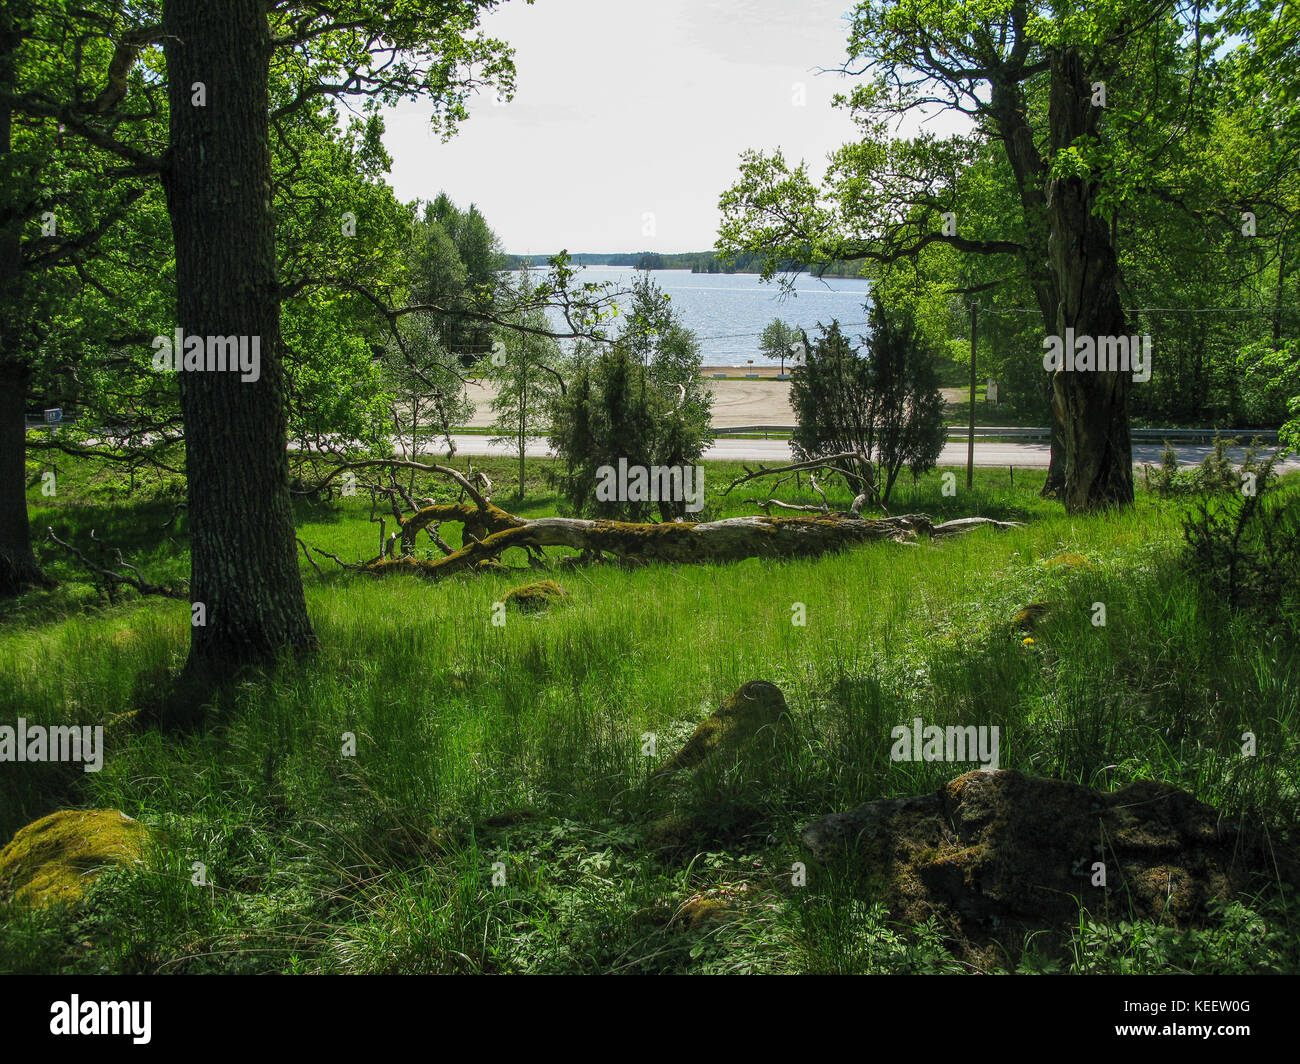 SPARREHOLM Sörmlands Protected oak forest as nature area 2017 - Stock Image